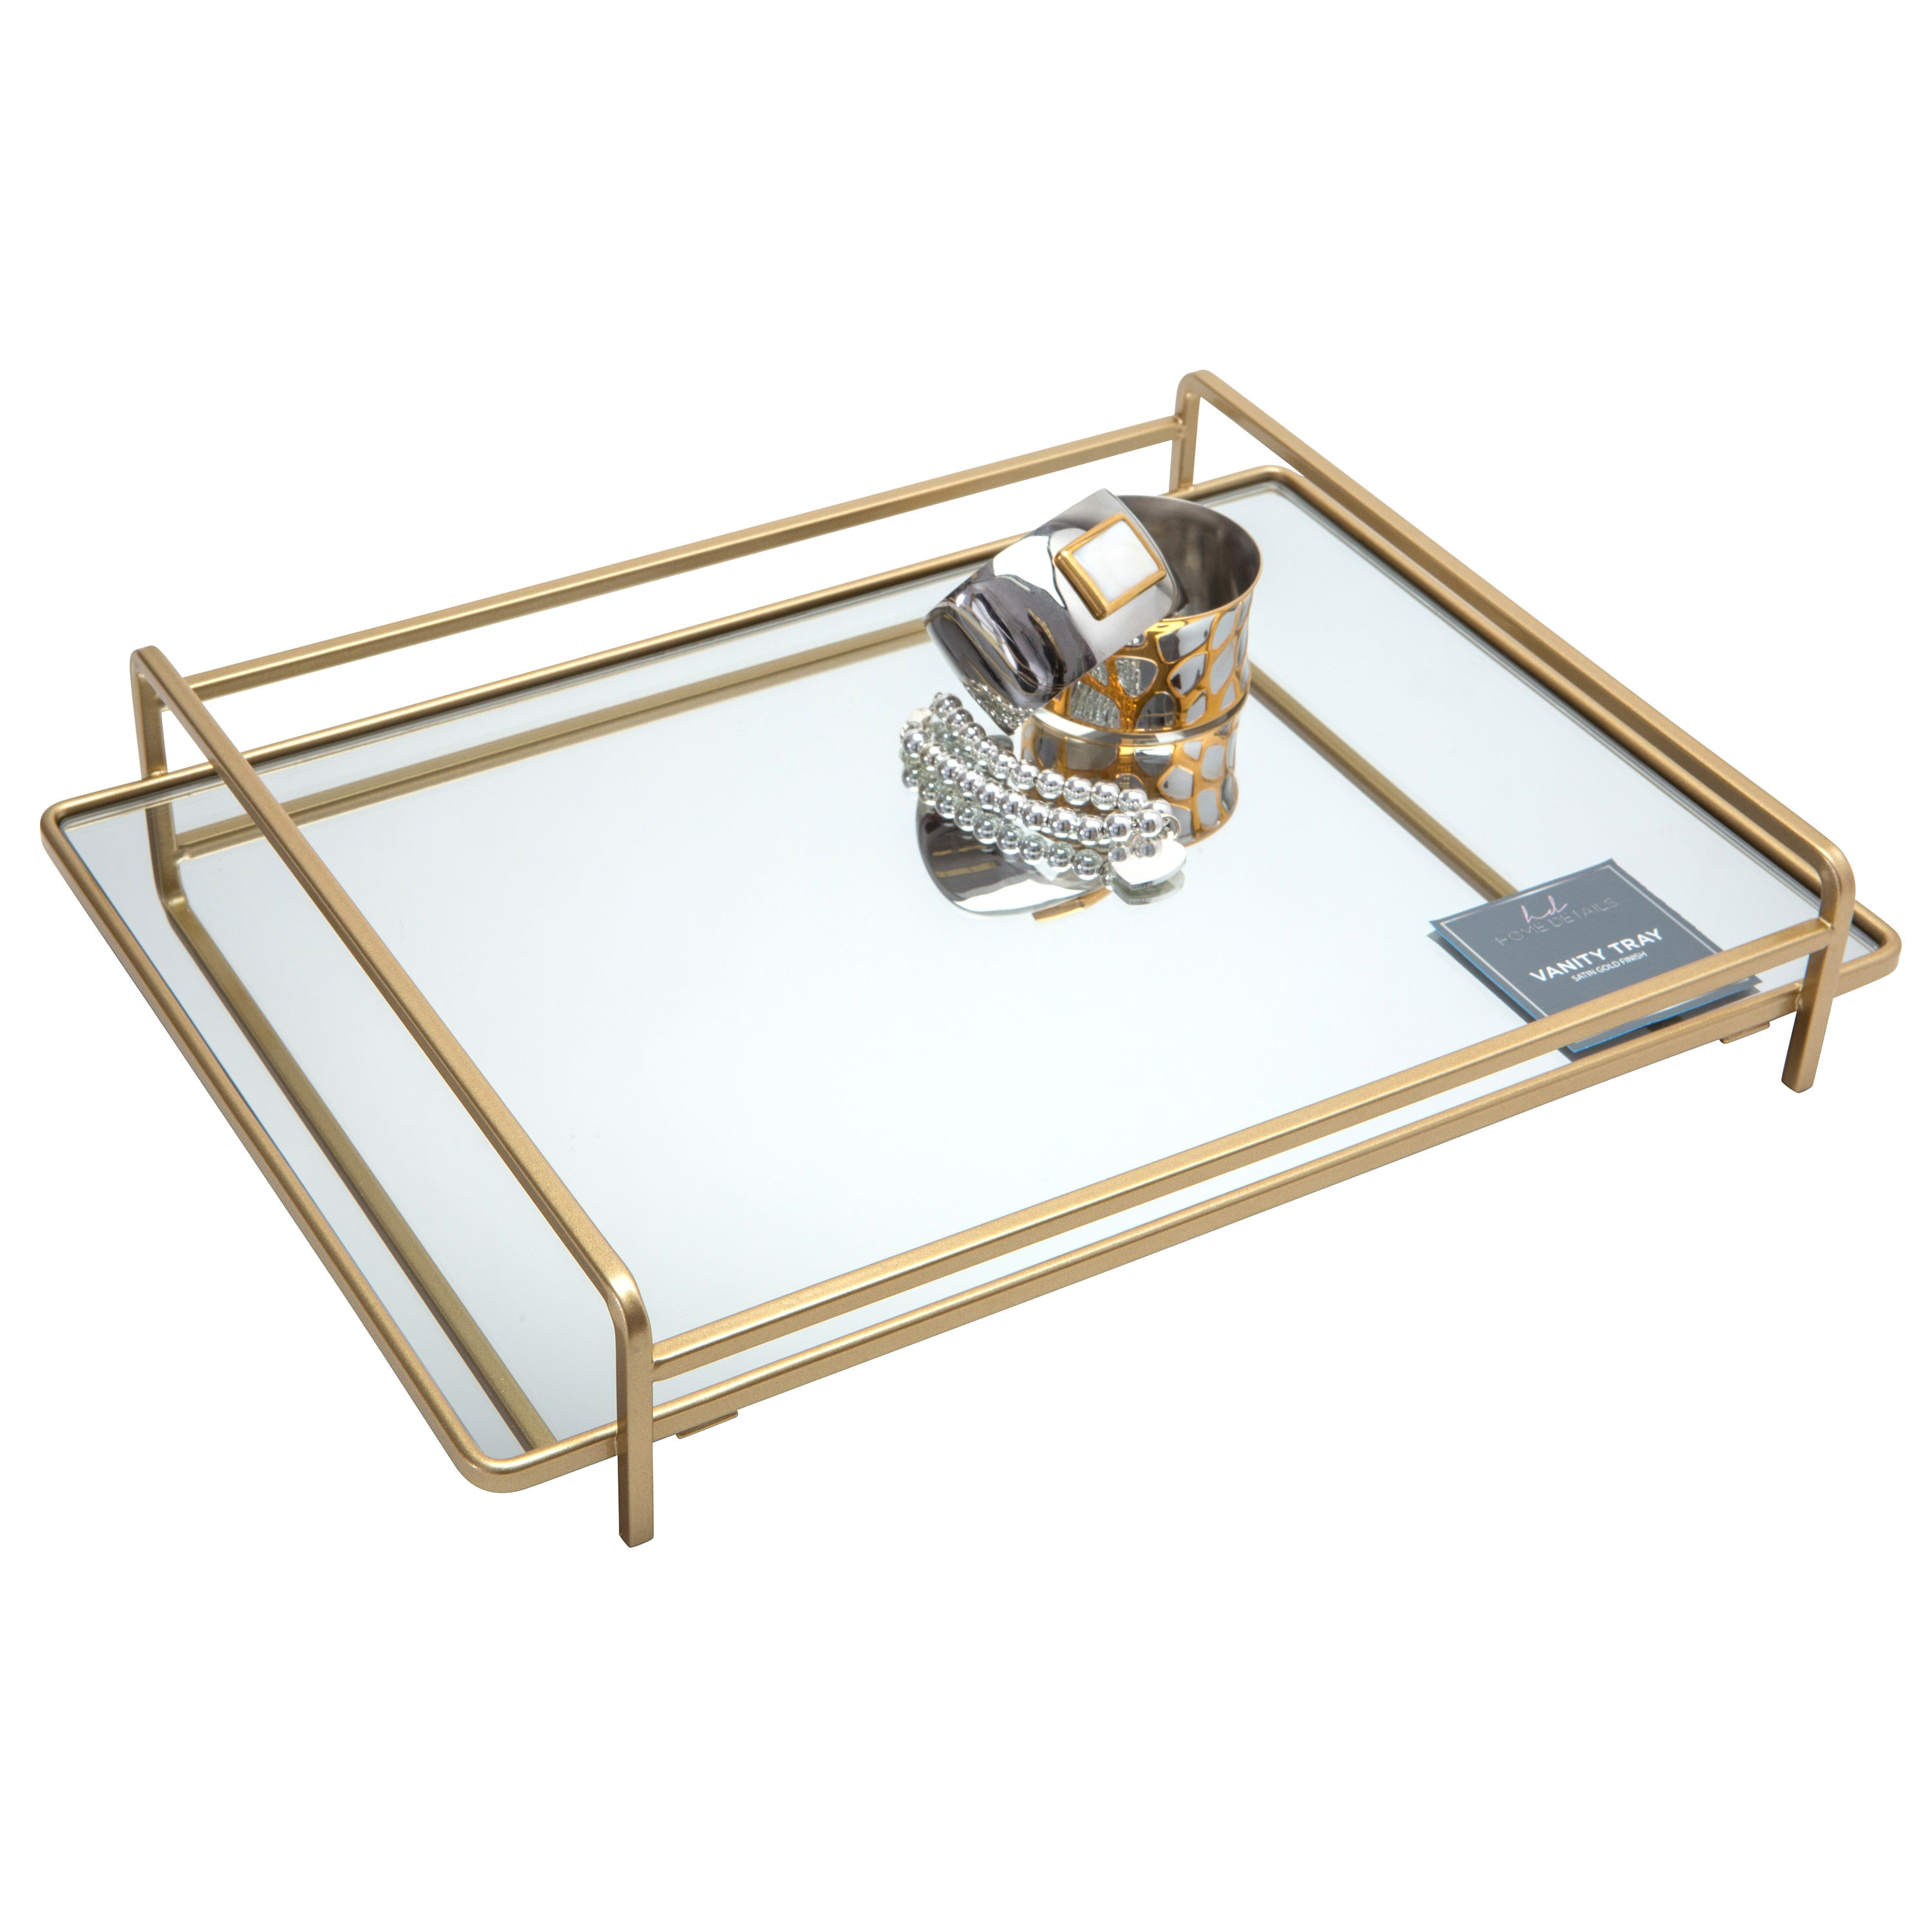 4 rail Vanity Mirror Tray Free Shipping Orders Over $45